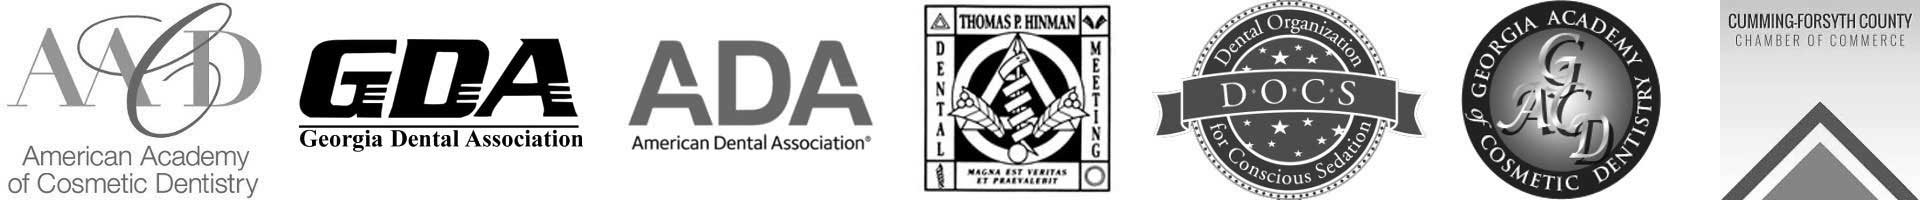 Dental Associatons logos